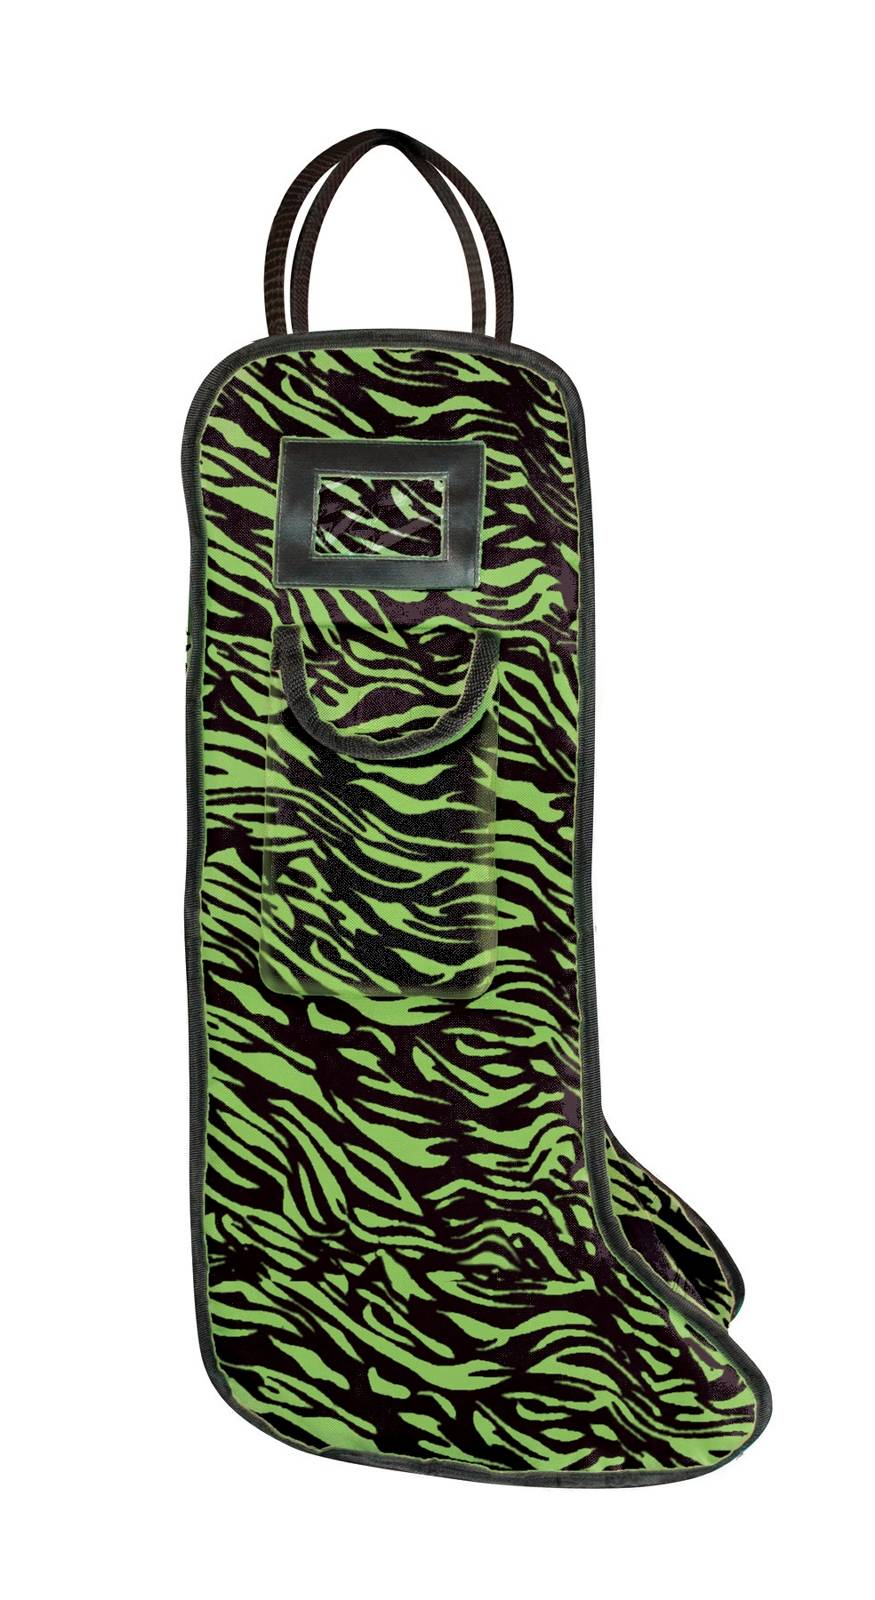 Perri's Zebra Cordura Boot Bag